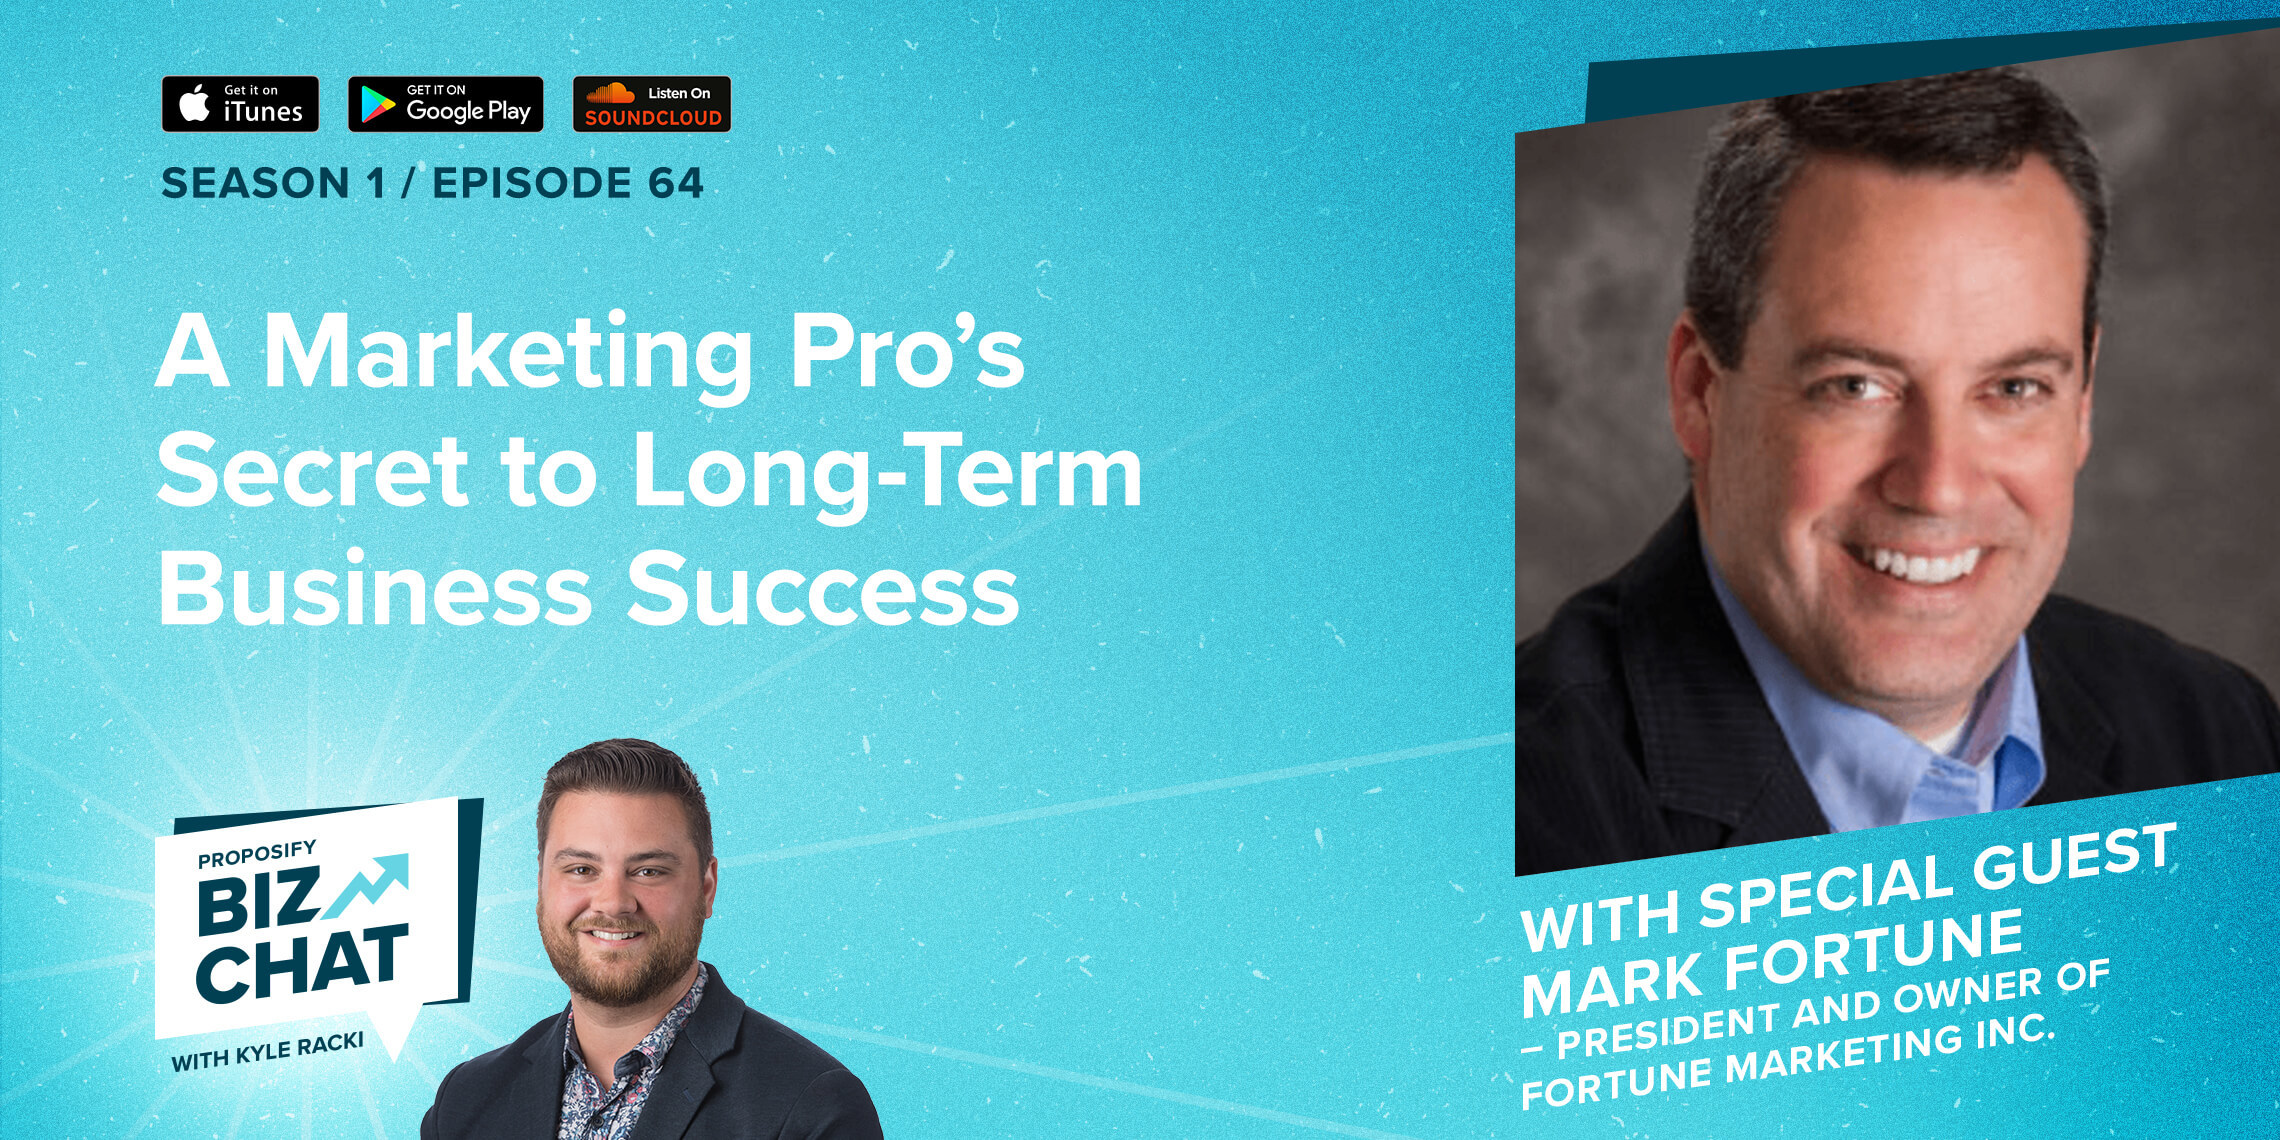 A Marketing Pro's Secret to Long-term Business Success